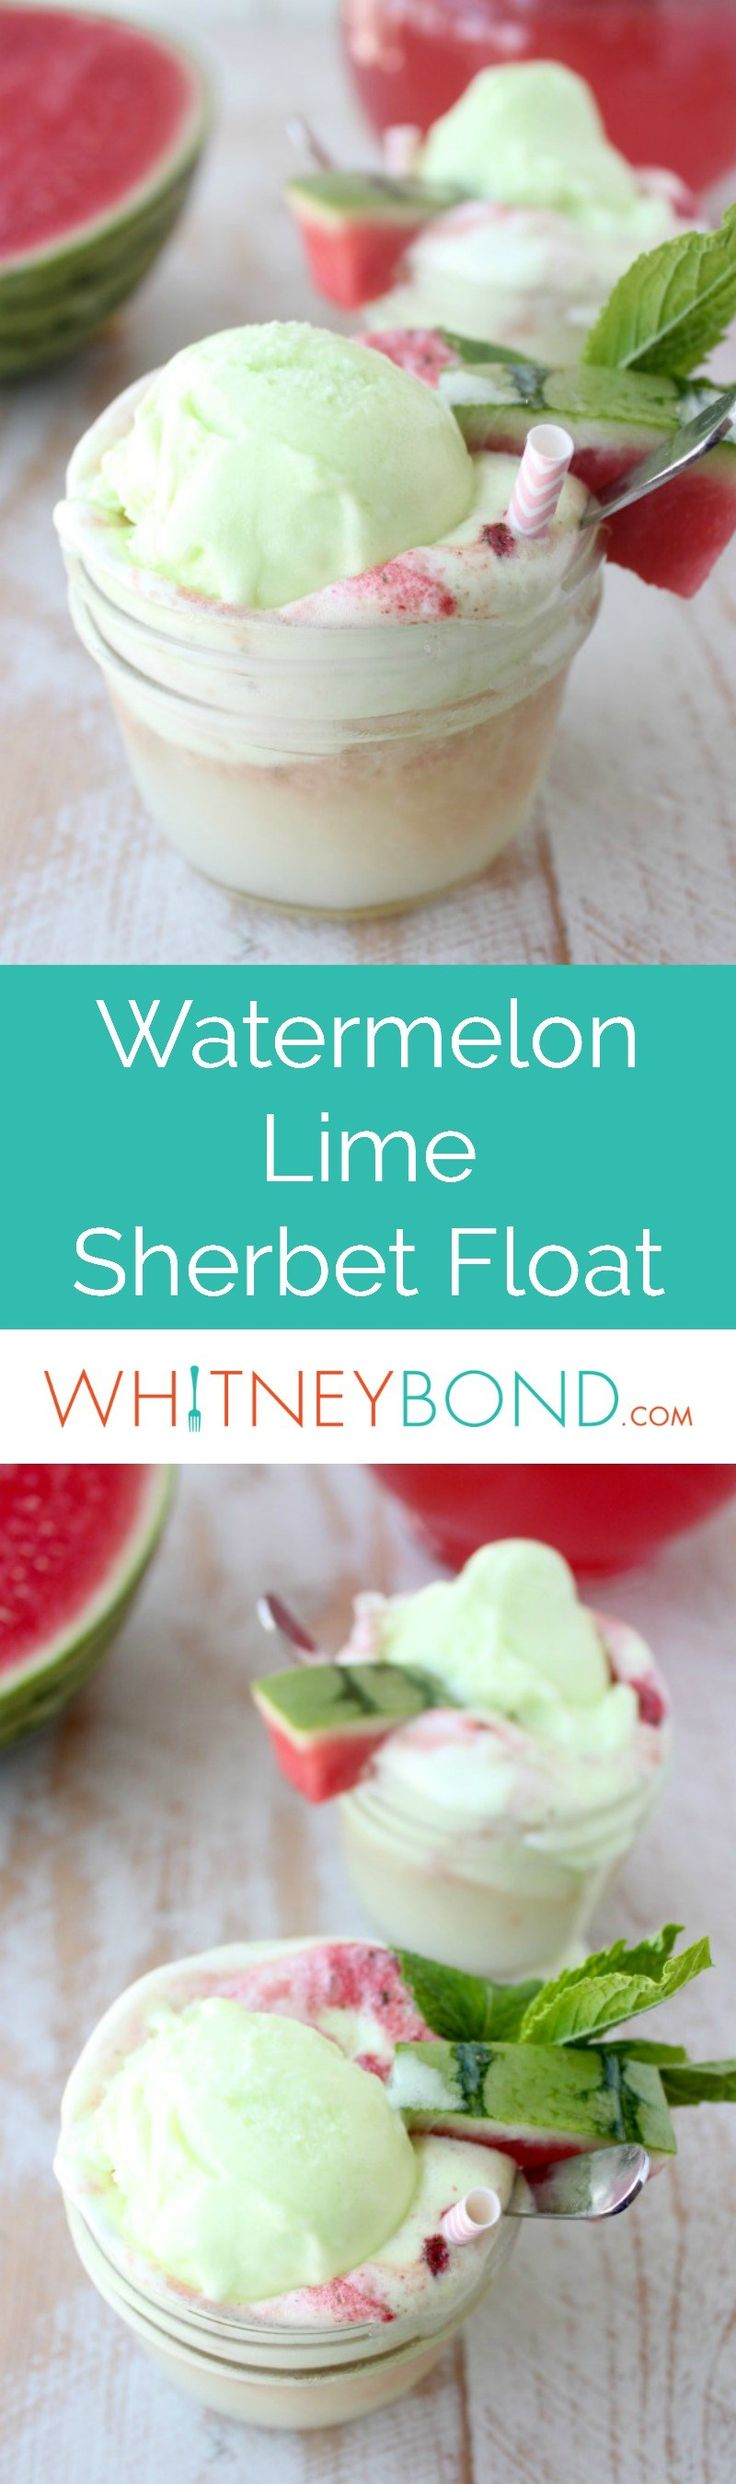 Fresh watermelon and mint are combined with lemon lime soda and poured over lime sherbet in this delicious sherbet float recipe, perfect for spring and summer! Serve in half pint mason jars with tasting spoons from @worldmarket. #WorldMarketTribe